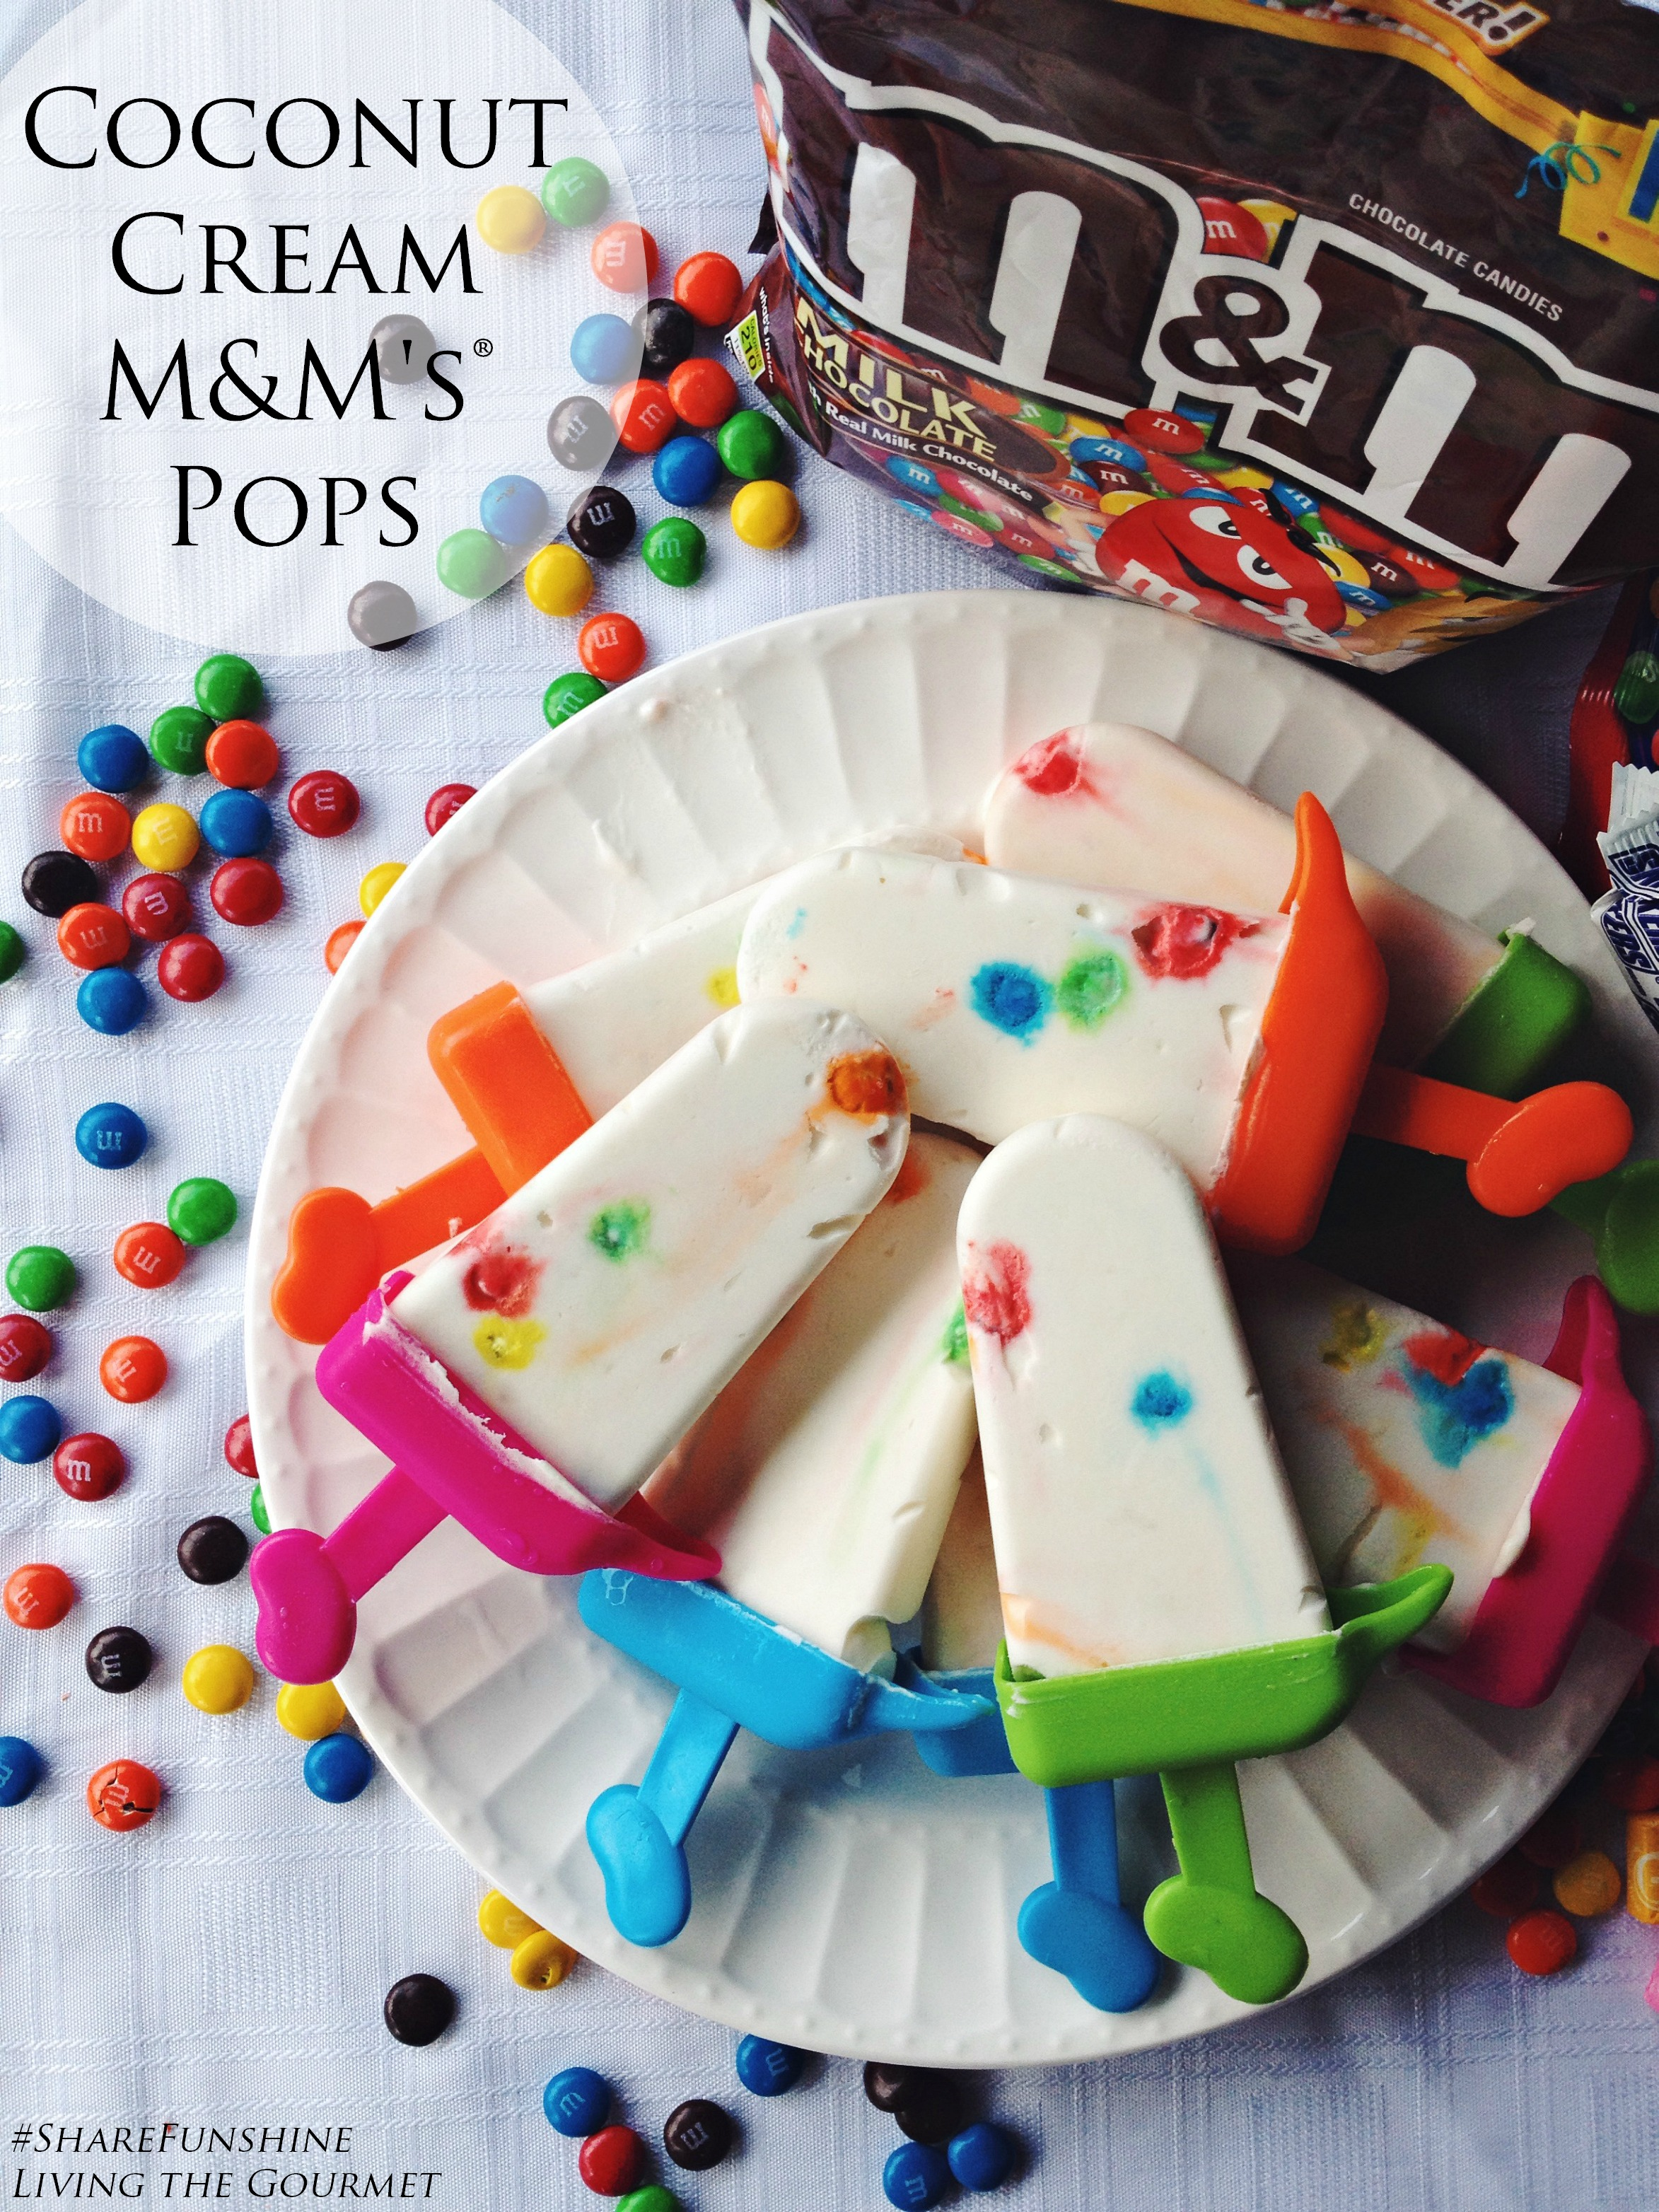 Living the Gourmet: Coconut Cream M&M's Pops | #ShareFunshine #Ad